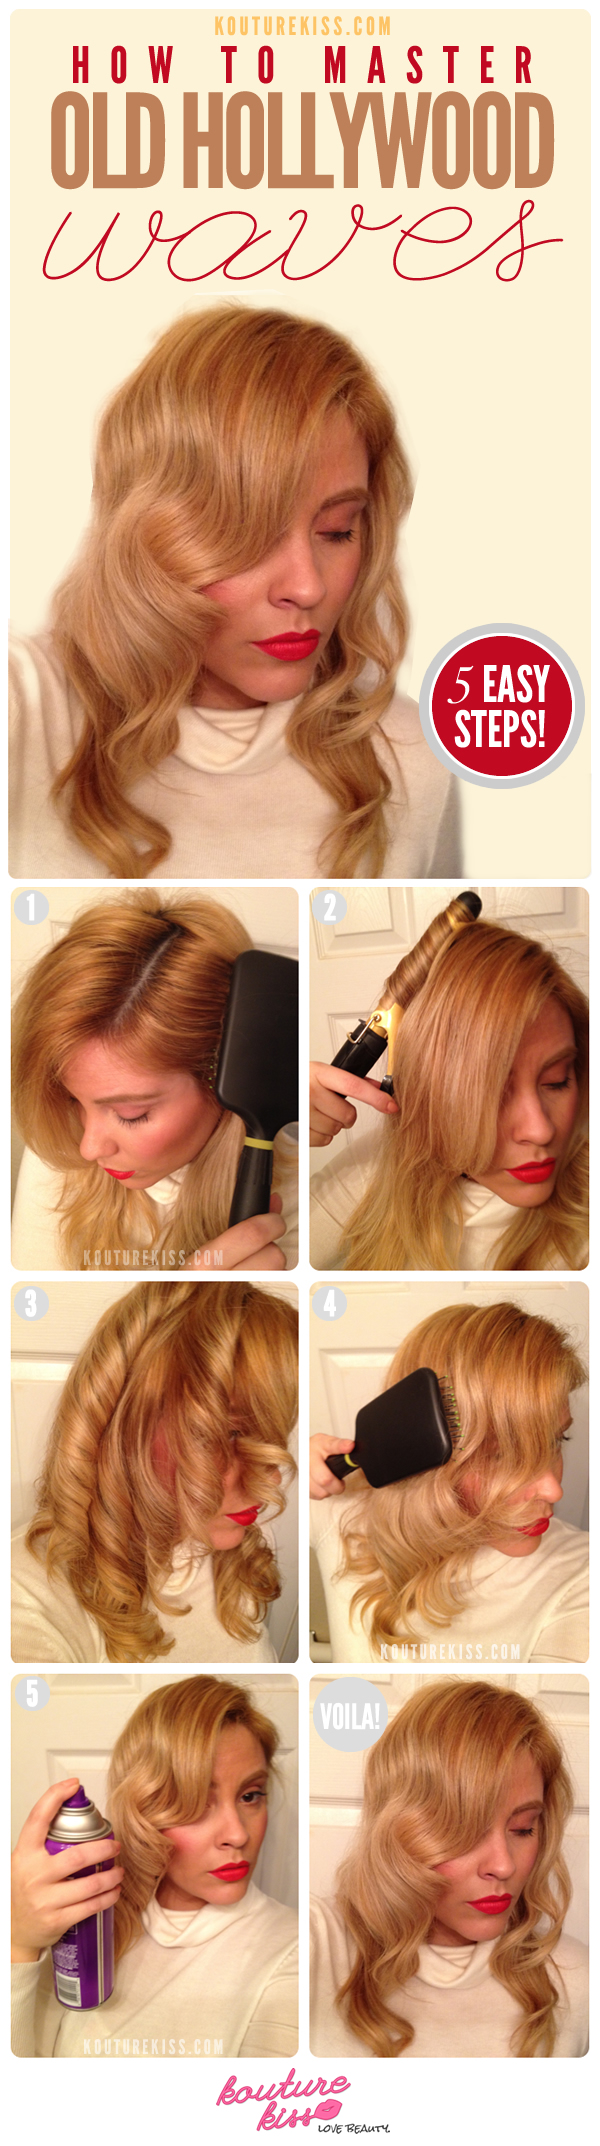 11 interesting and useful hair tutorials for every day diy old hollywood waves hairstyle solutioingenieria Images